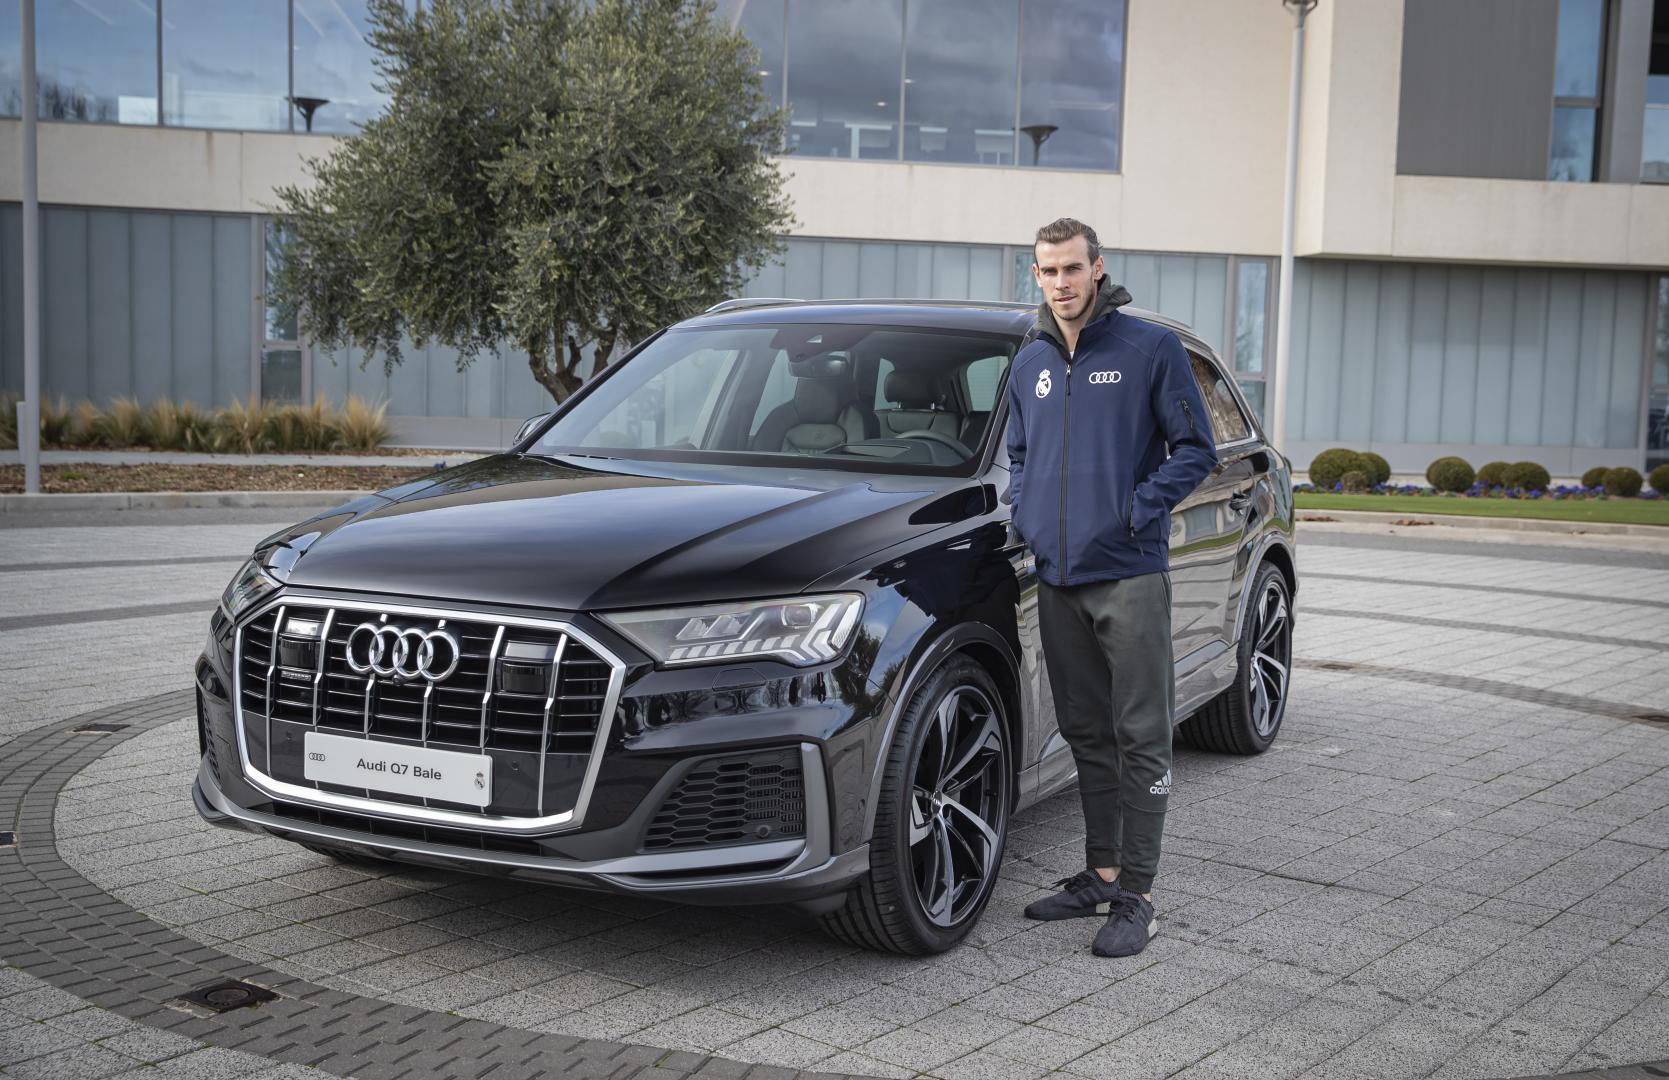 Real Madrid Audi Q7 Bale